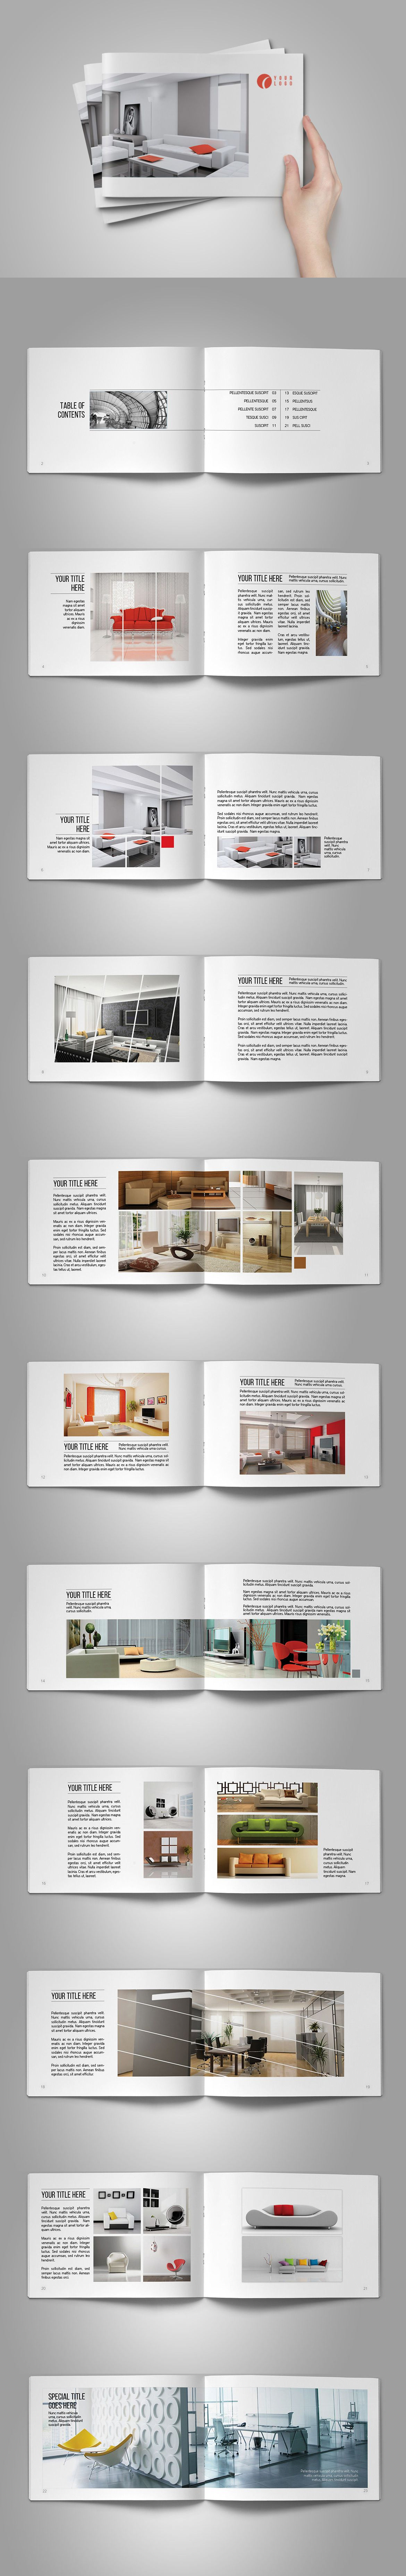 Interior Design Brochure Template InDesign INDD - 24 Pages, A5 ...